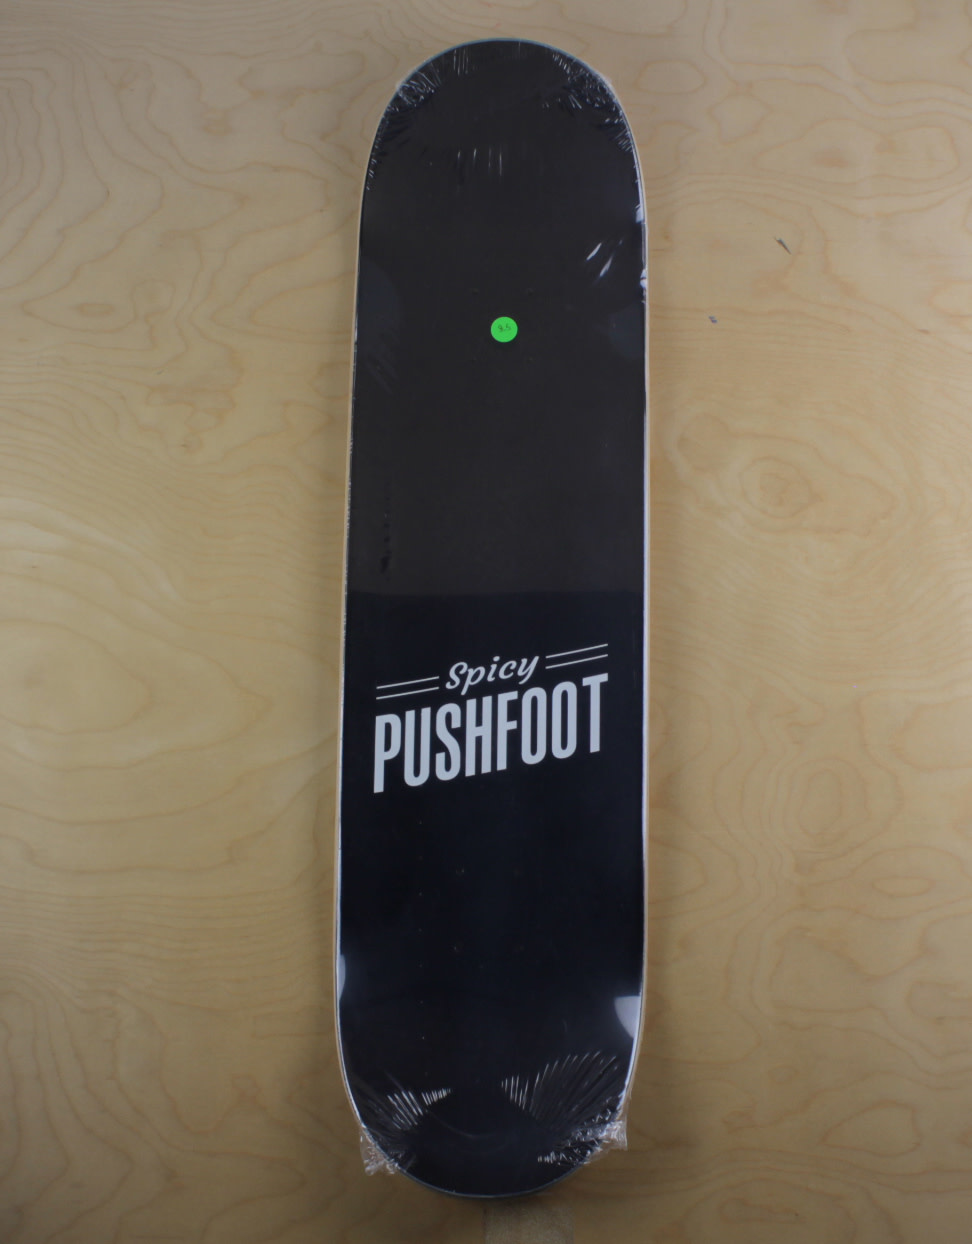 Pushfoot - 8.25 Stinson Spicy